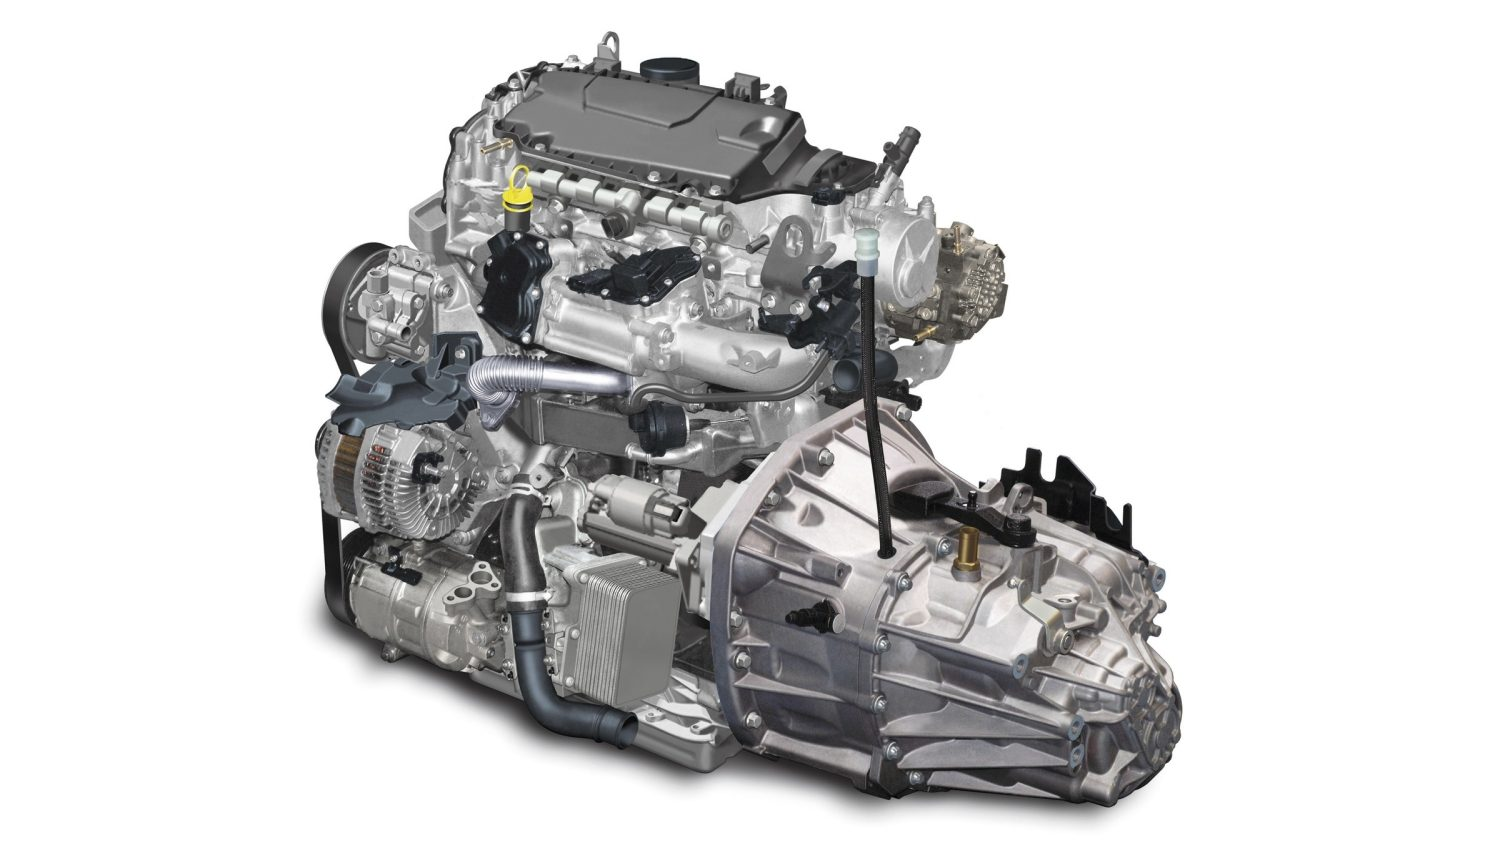 Nissan NV400 - Turbodiesel engine